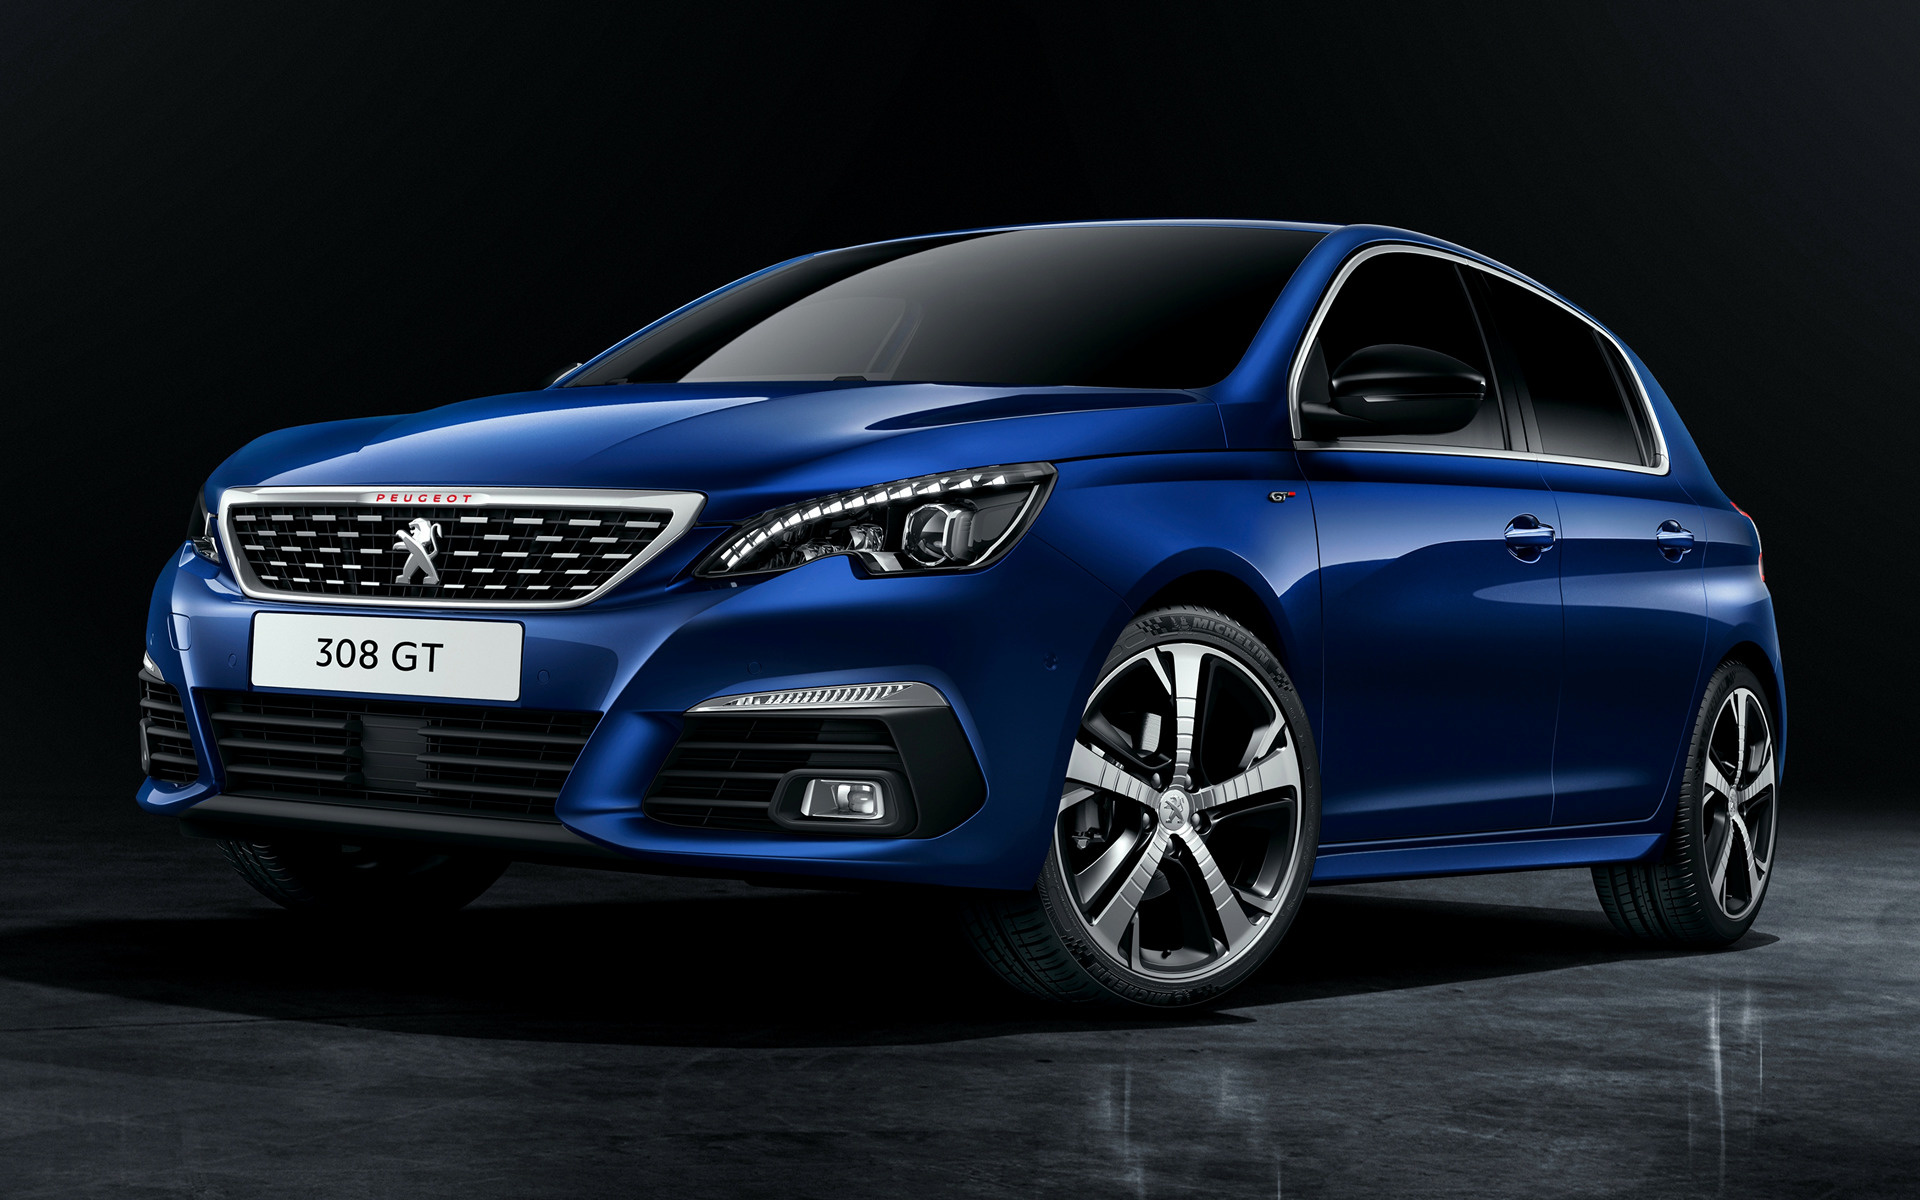 2017 Peugeot 308 Gt Wallpapers And Hd Images Car Pixel